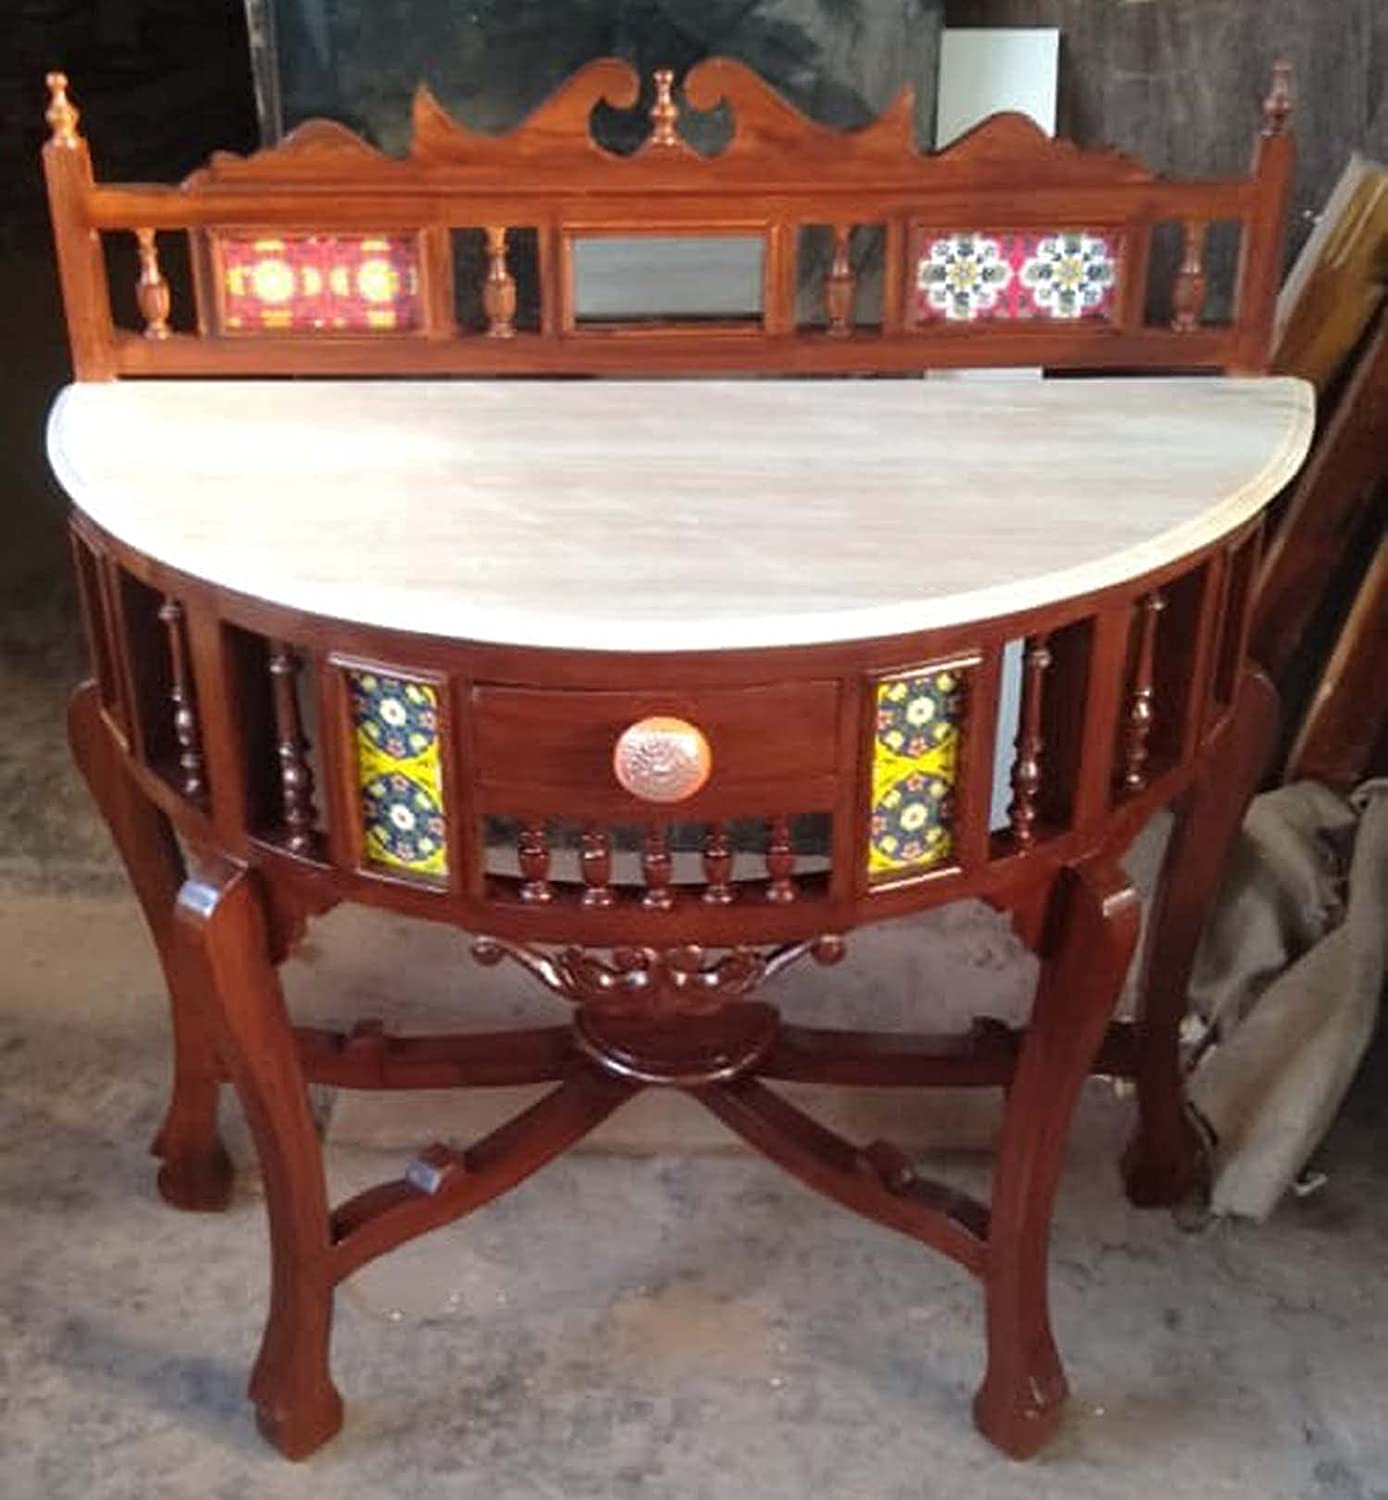 Traditional Half Round (D) Shape Console Table Solid Teak Wood with Marble Top, Lacquer Finish Honey Brown Size: 30x36x15 Inch